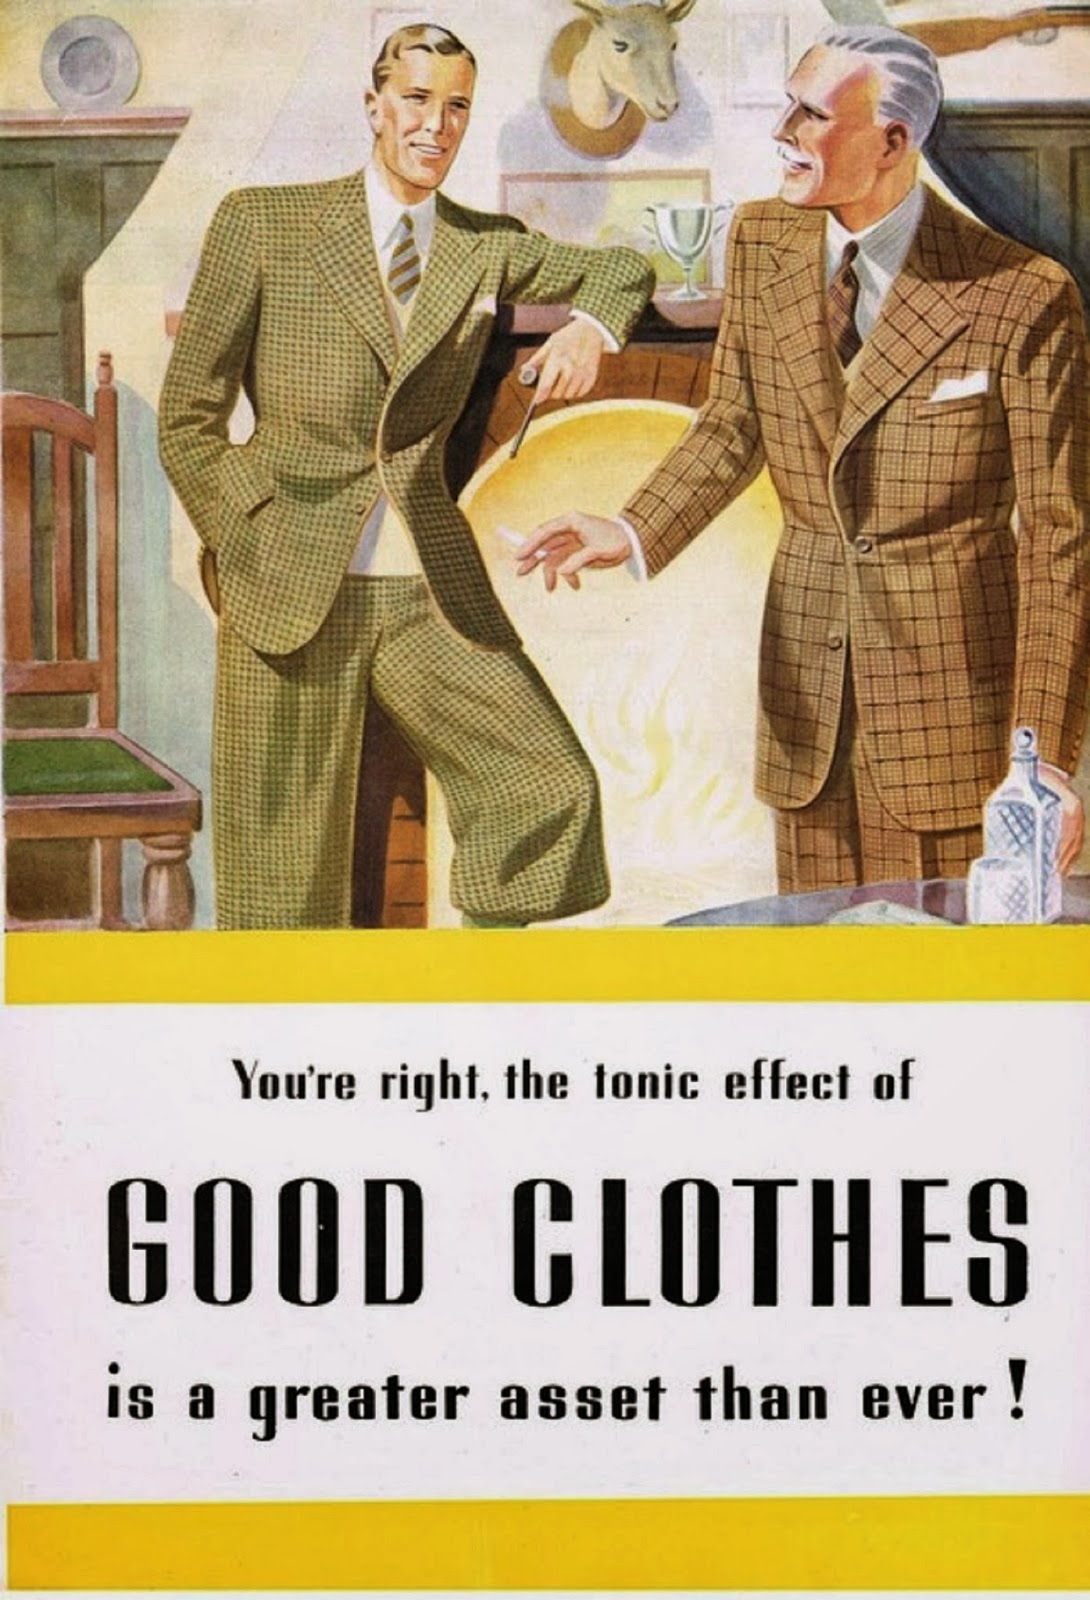 The tonic effect of goodclothes